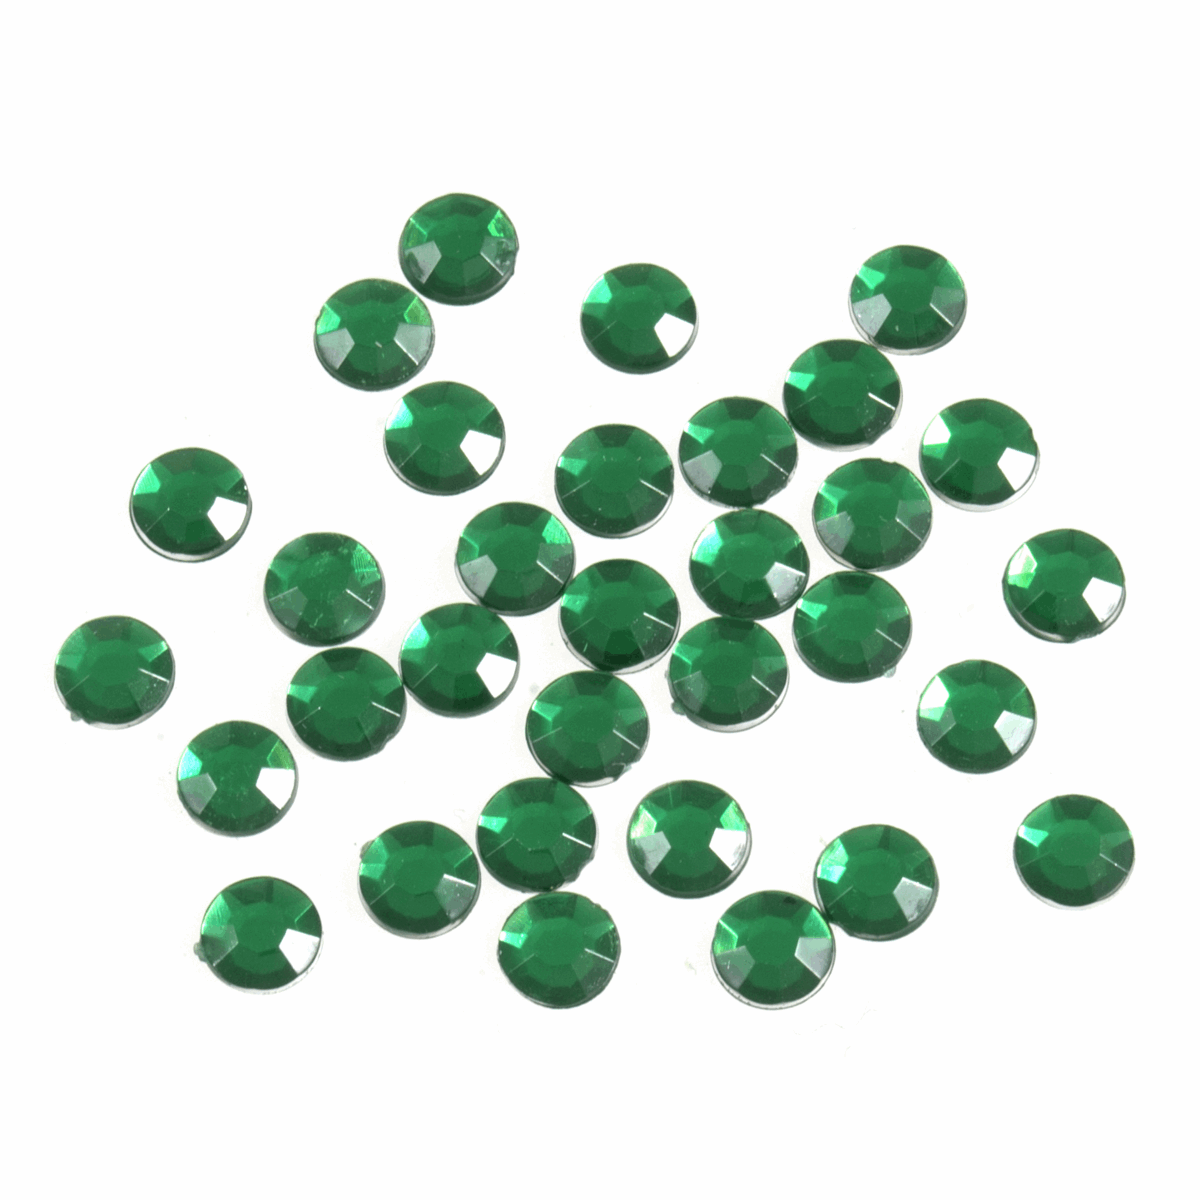 Picture of Acrylic Stones: Glue-On: Round: Large-7mm: Green